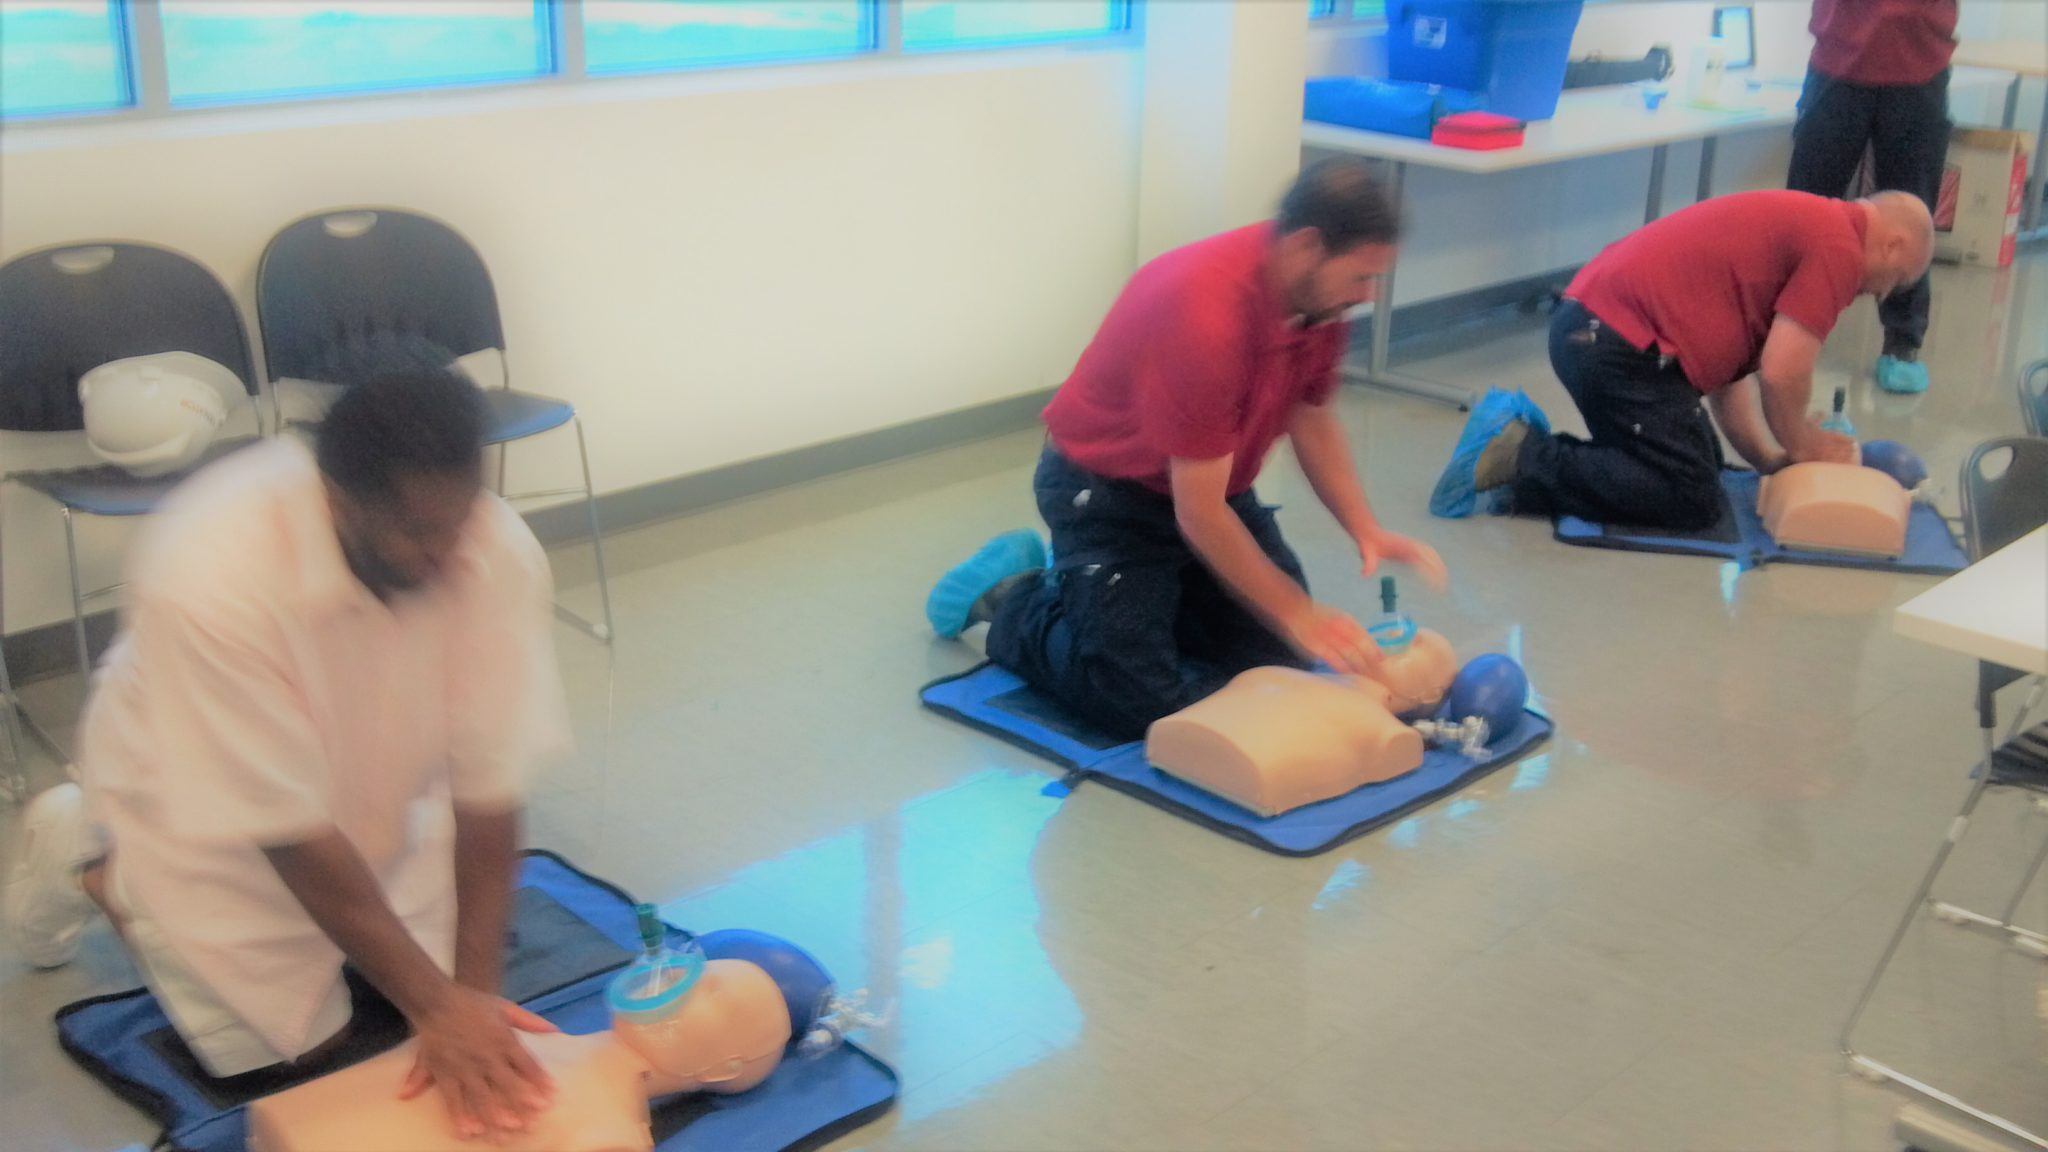 Corporate cpr why invest in aeds if employees know cpr xflitez Image collections